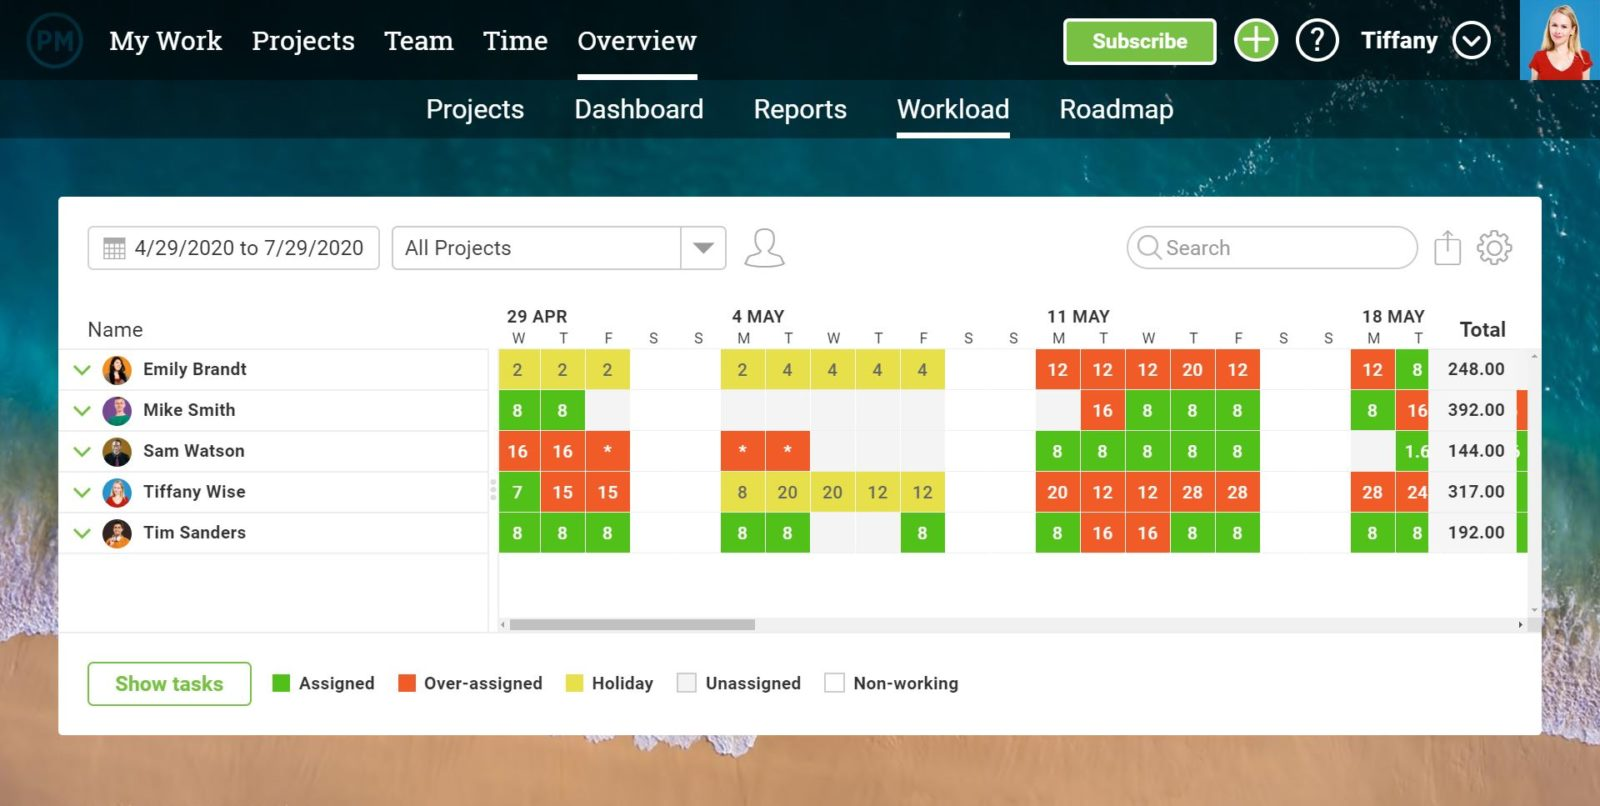 A screenshot of the Overview Workload chart, which shows team members and the amount of tasks they're assigned to.